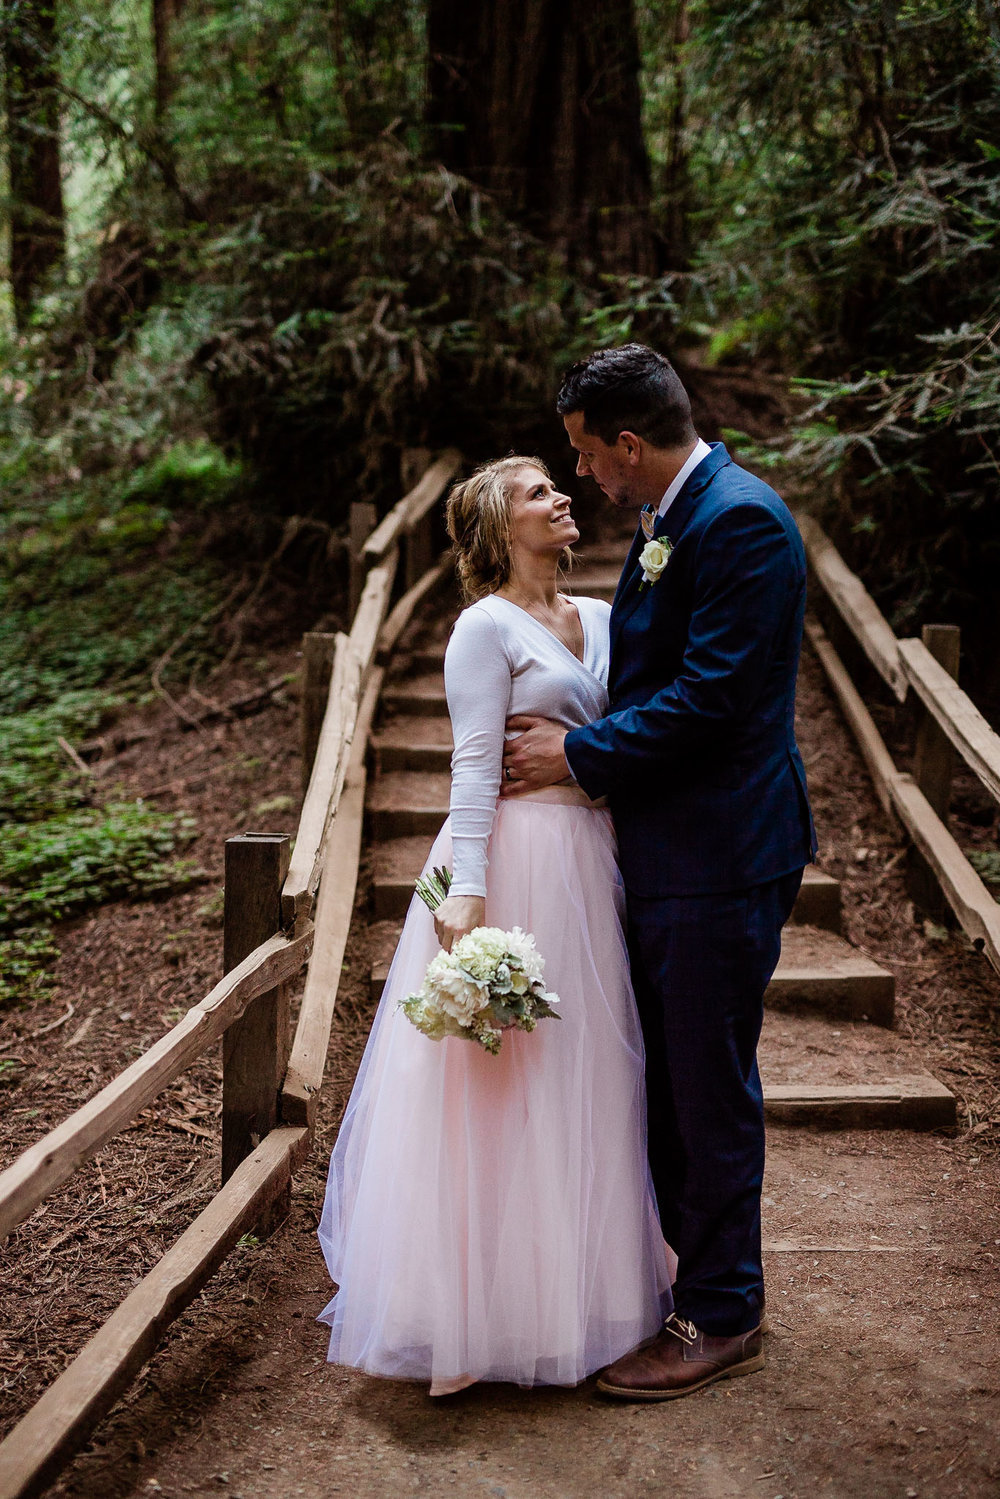 Bride and Groom pose for wedding photos in the Muir Woods National Monument